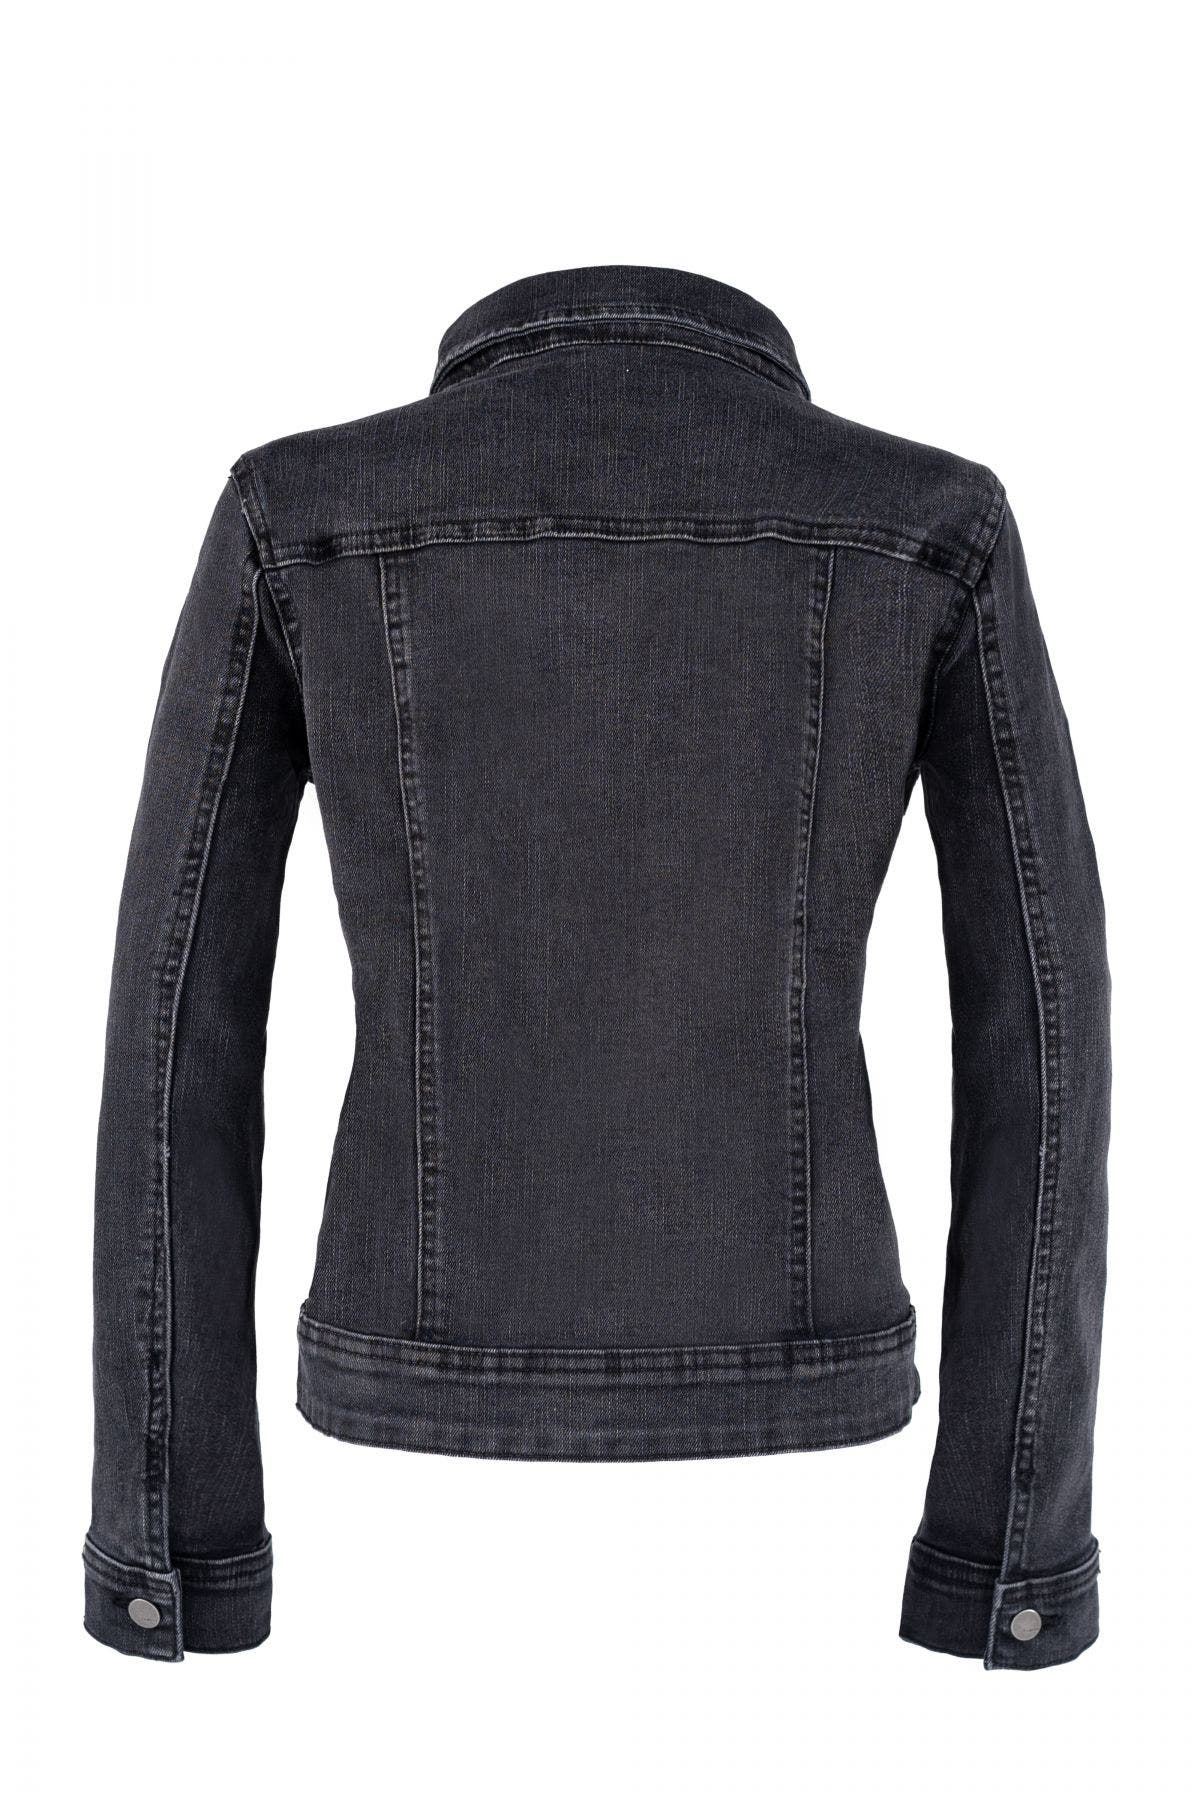 Basic Black Denim Jacket